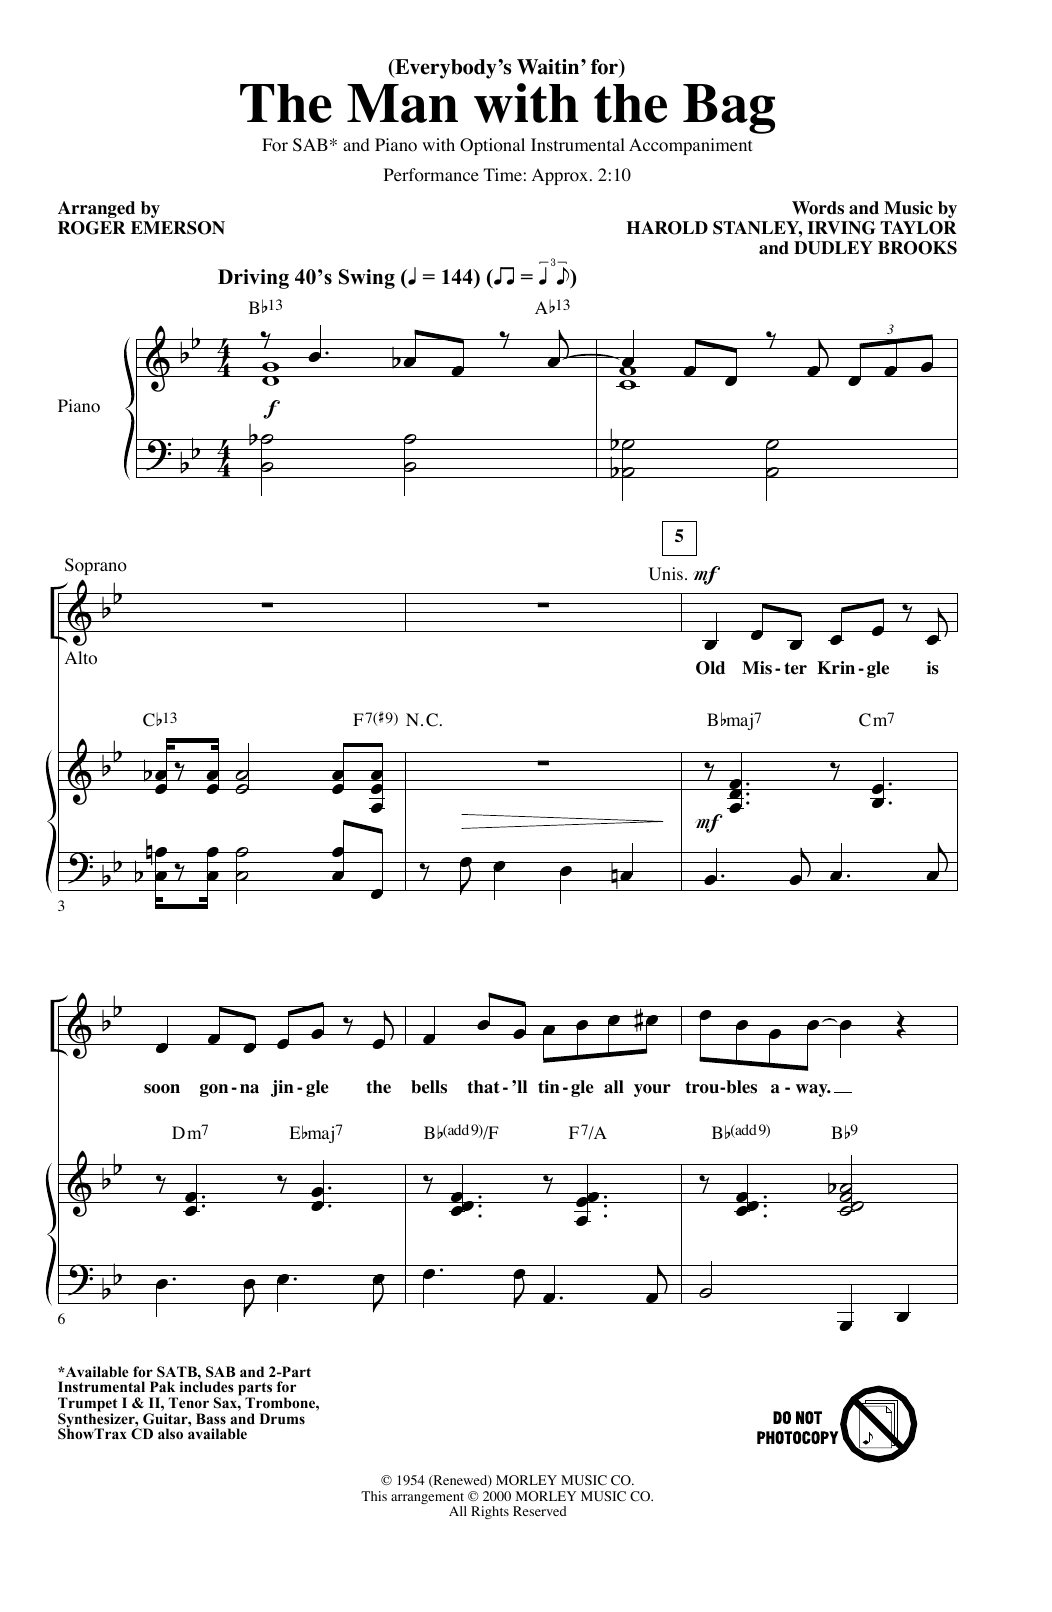 Kaye Starr (Everybody's Waitin' For) The Man With The Bag (arr. Roger Emerson) sheet music notes and chords. Download Printable PDF.